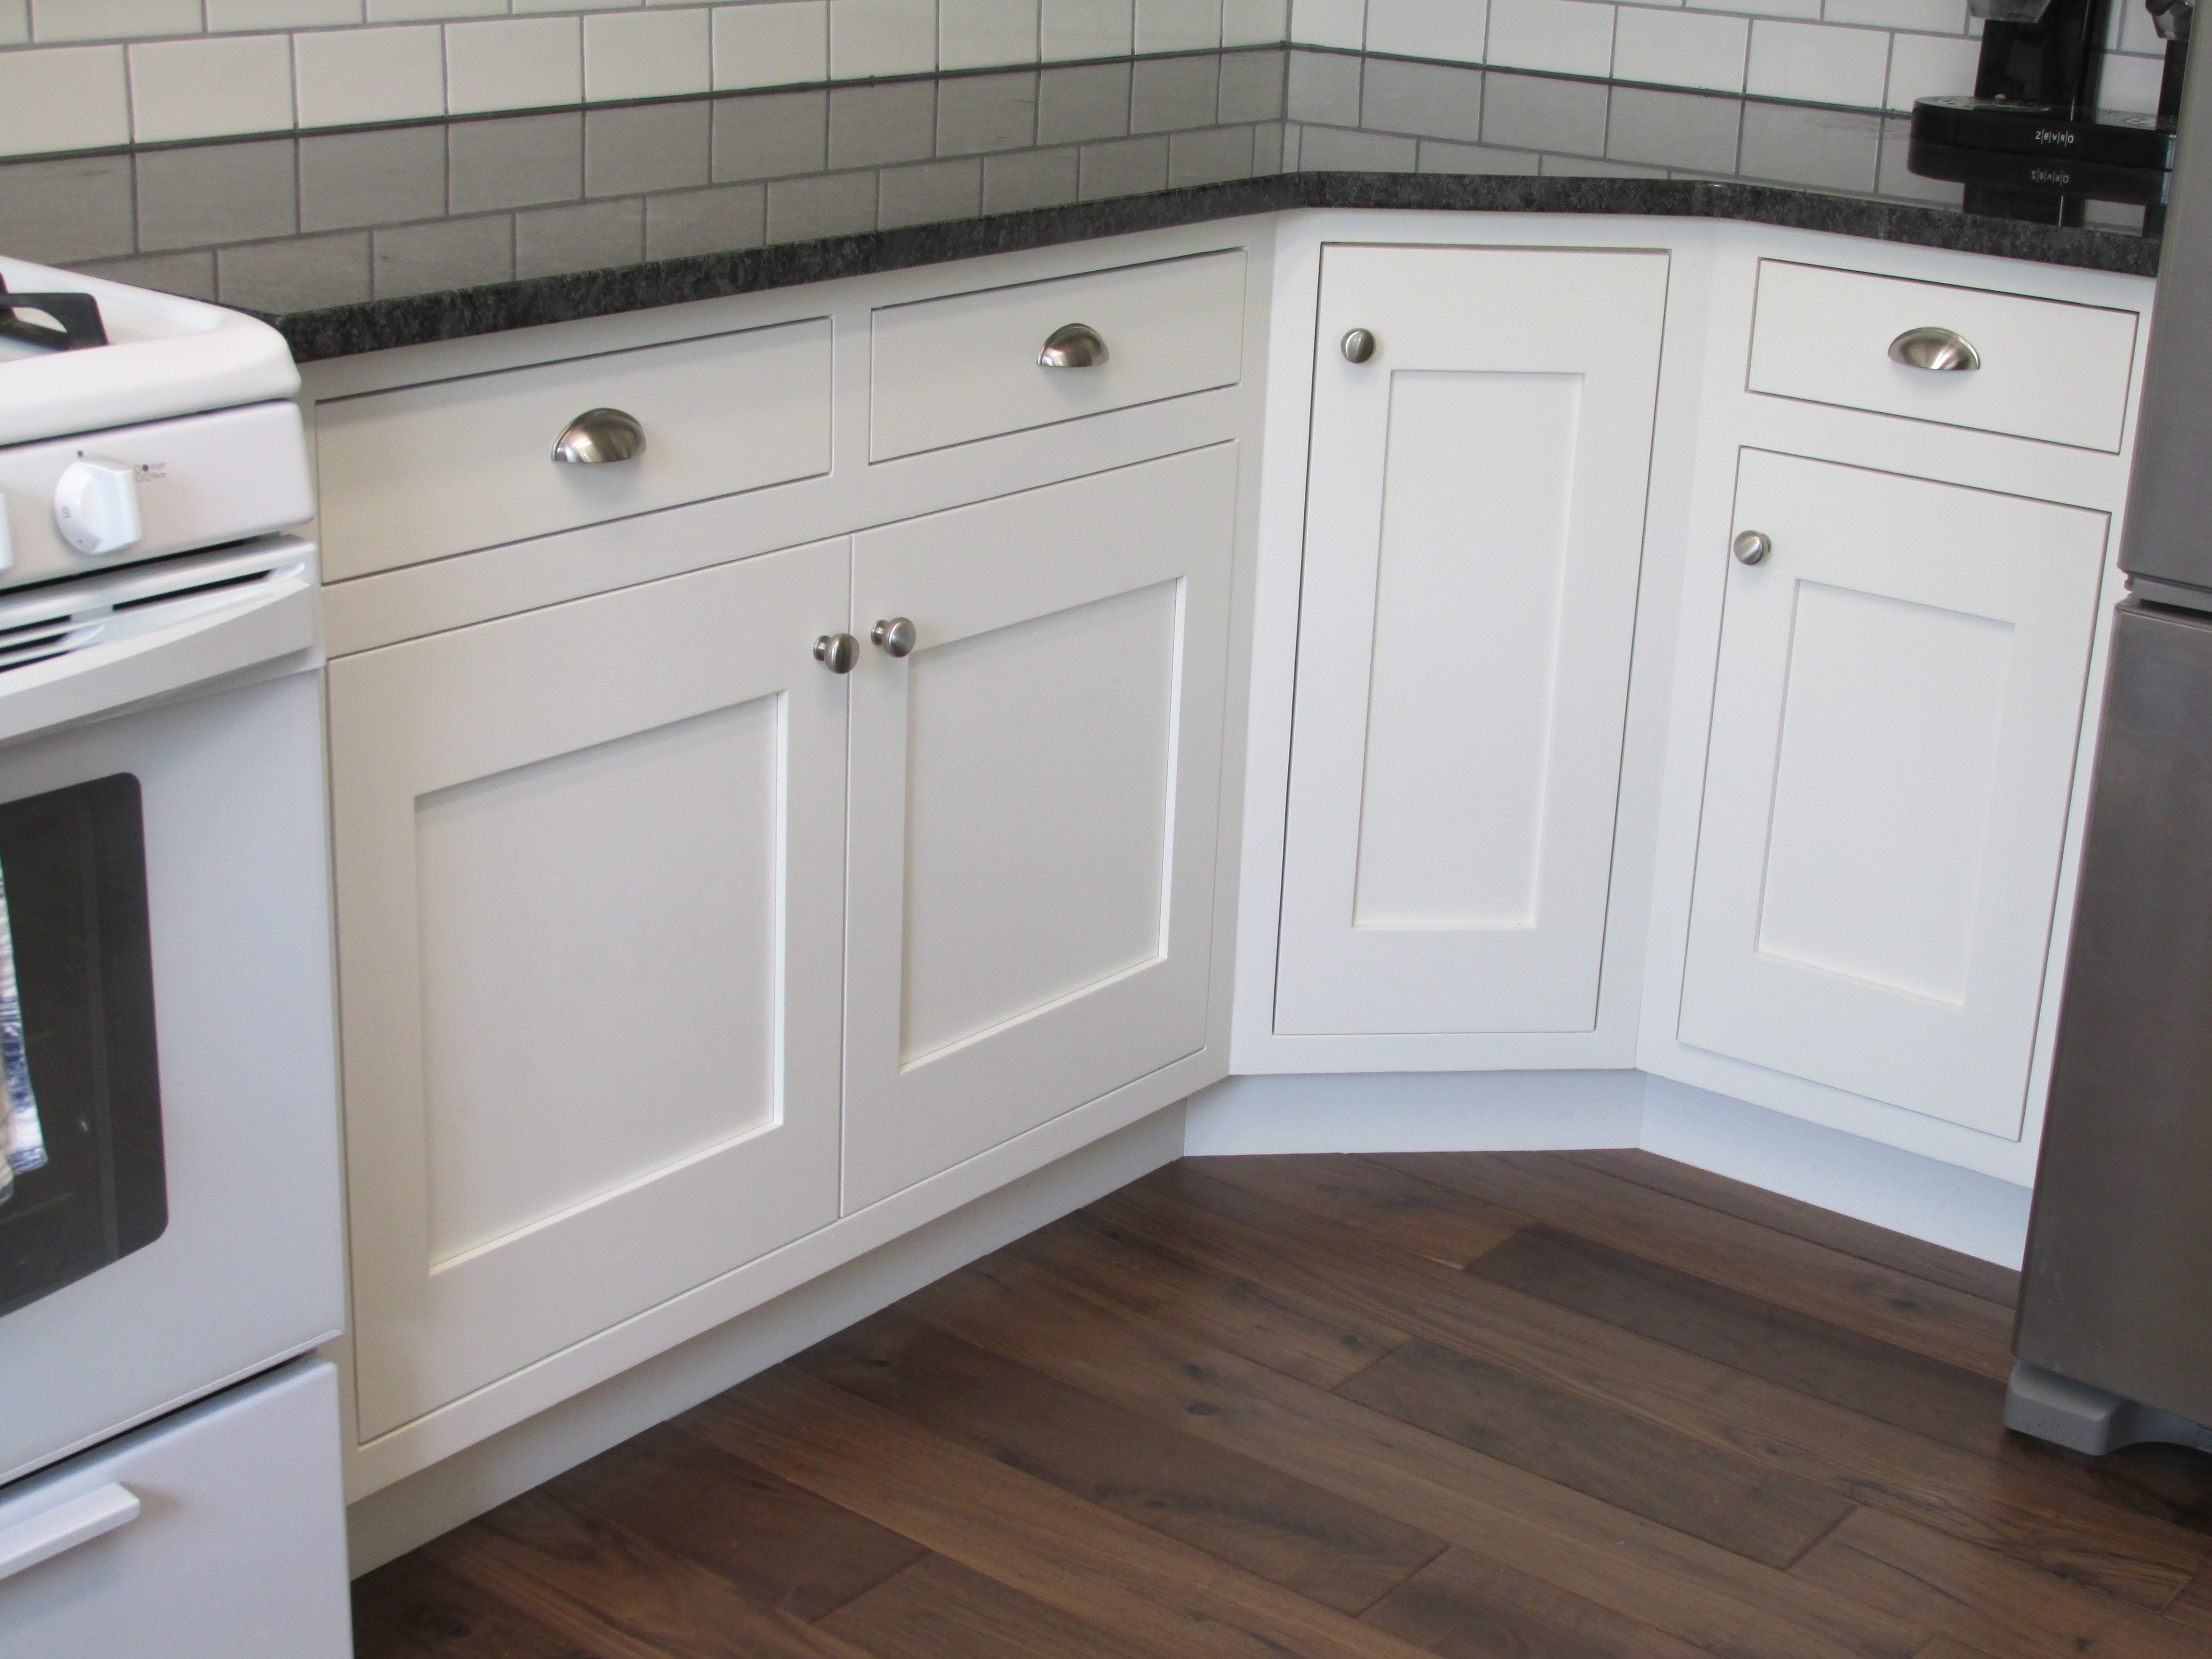 Inset Kitchen Cabinets Vs Overlay